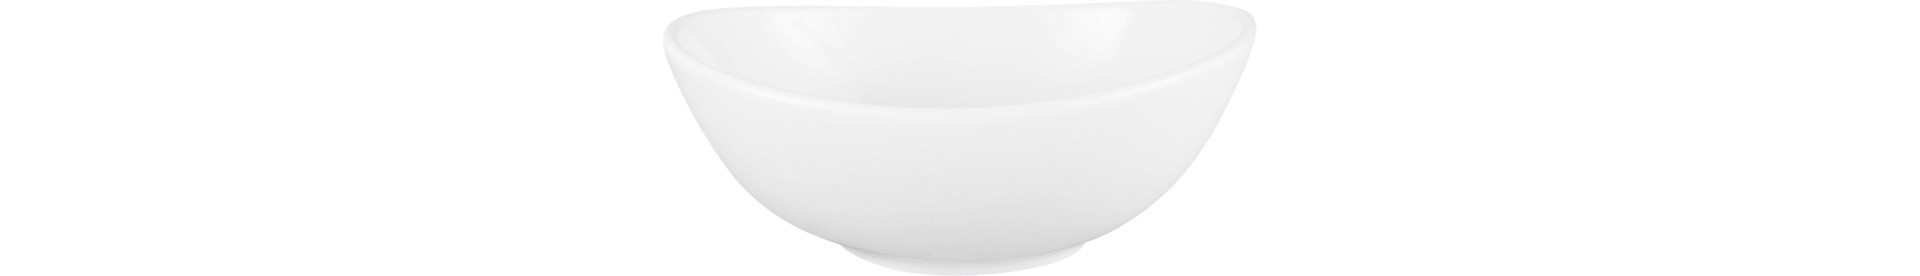 Meran, Bowl oval 120 x 95 mm / 0,18 l